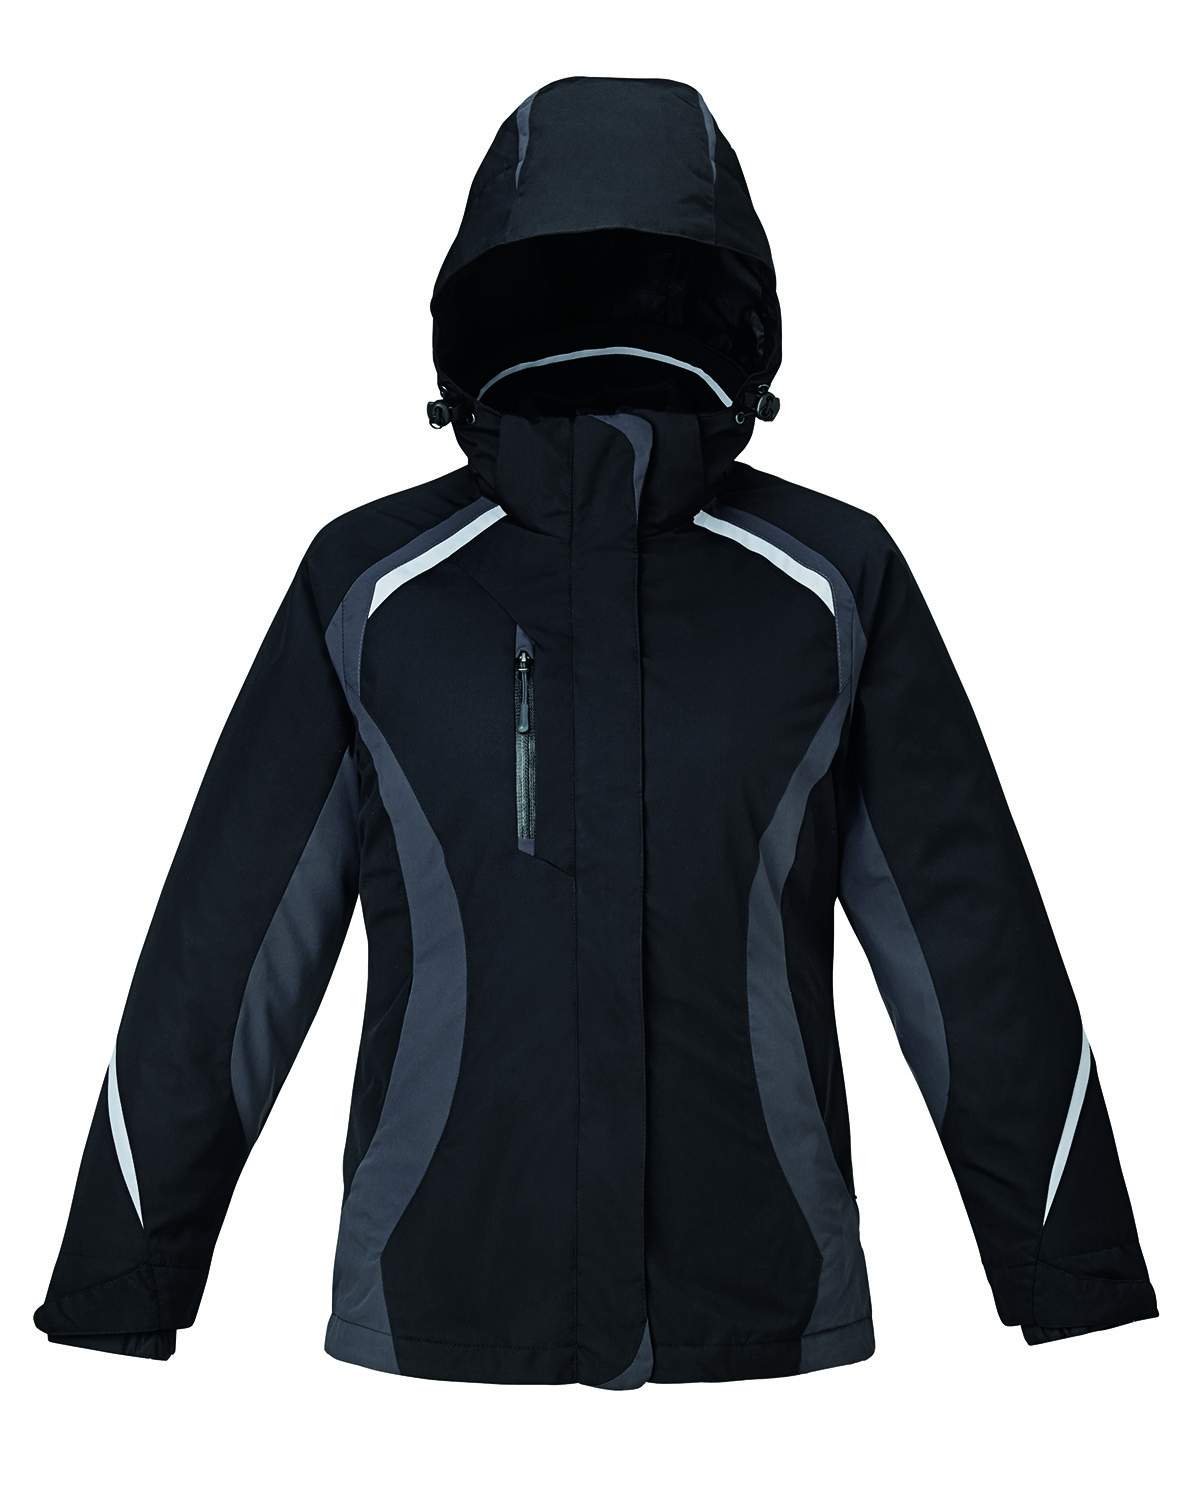 Ash City System Jackets 78195 - Height Ladies' 3-In-...